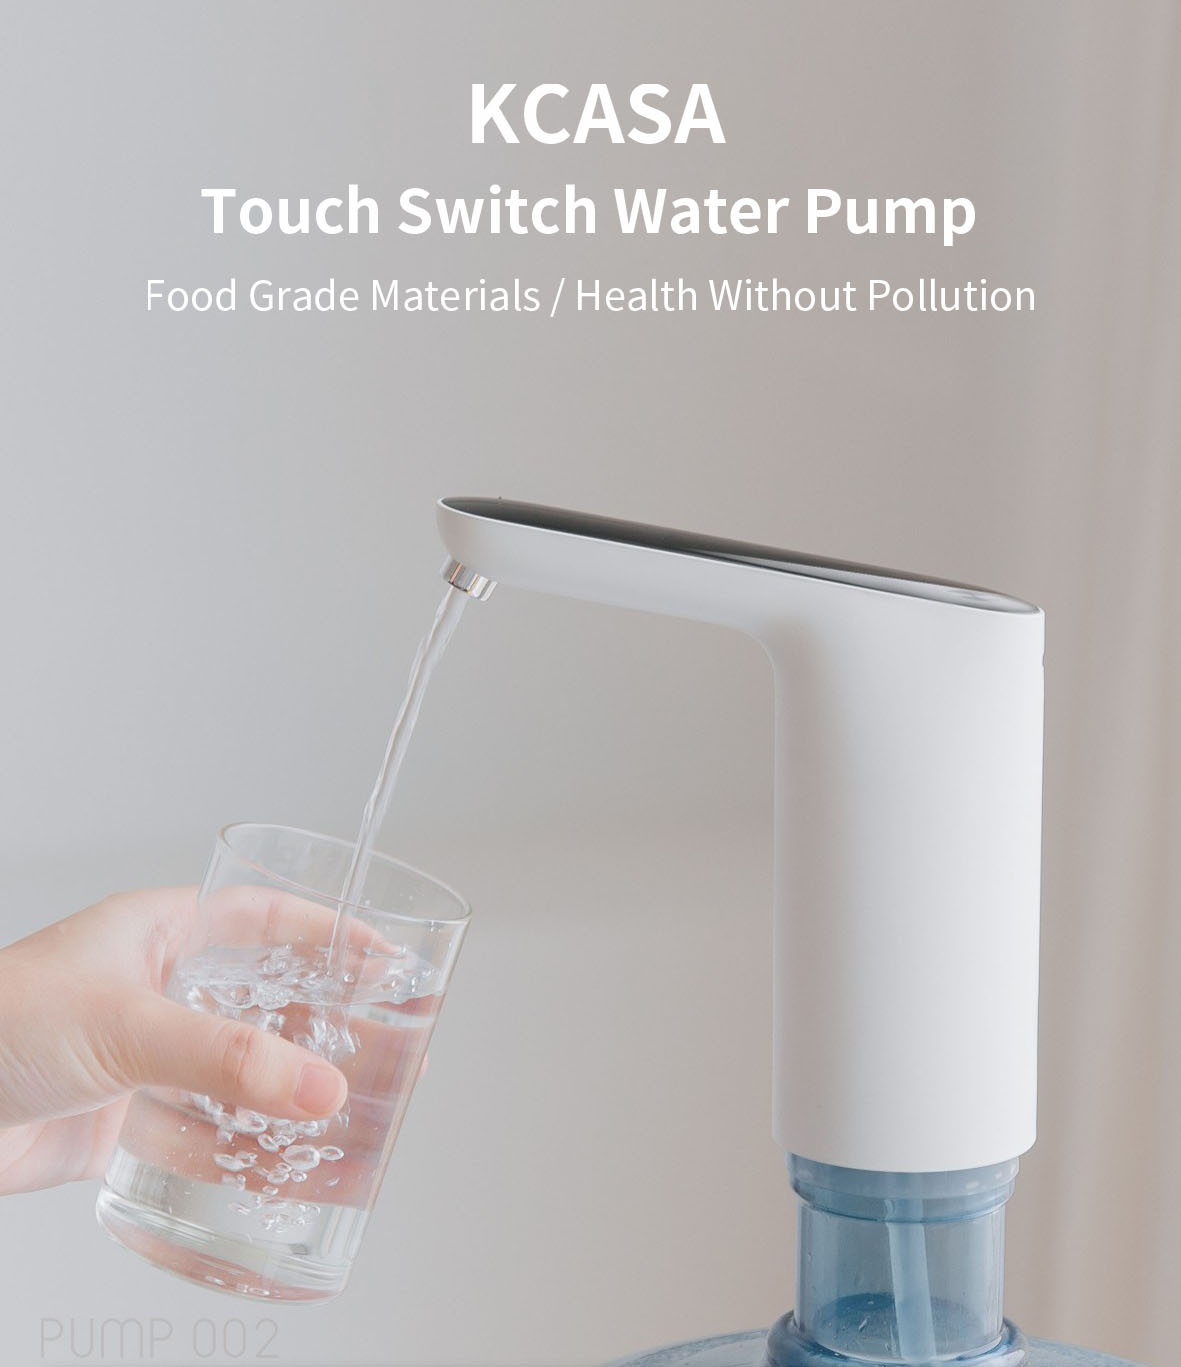 KCASA KC-002 USB Mini Touch Switch Water Pump Wireless Rechargeable Electric Dispenser Water Pump With USB Cable